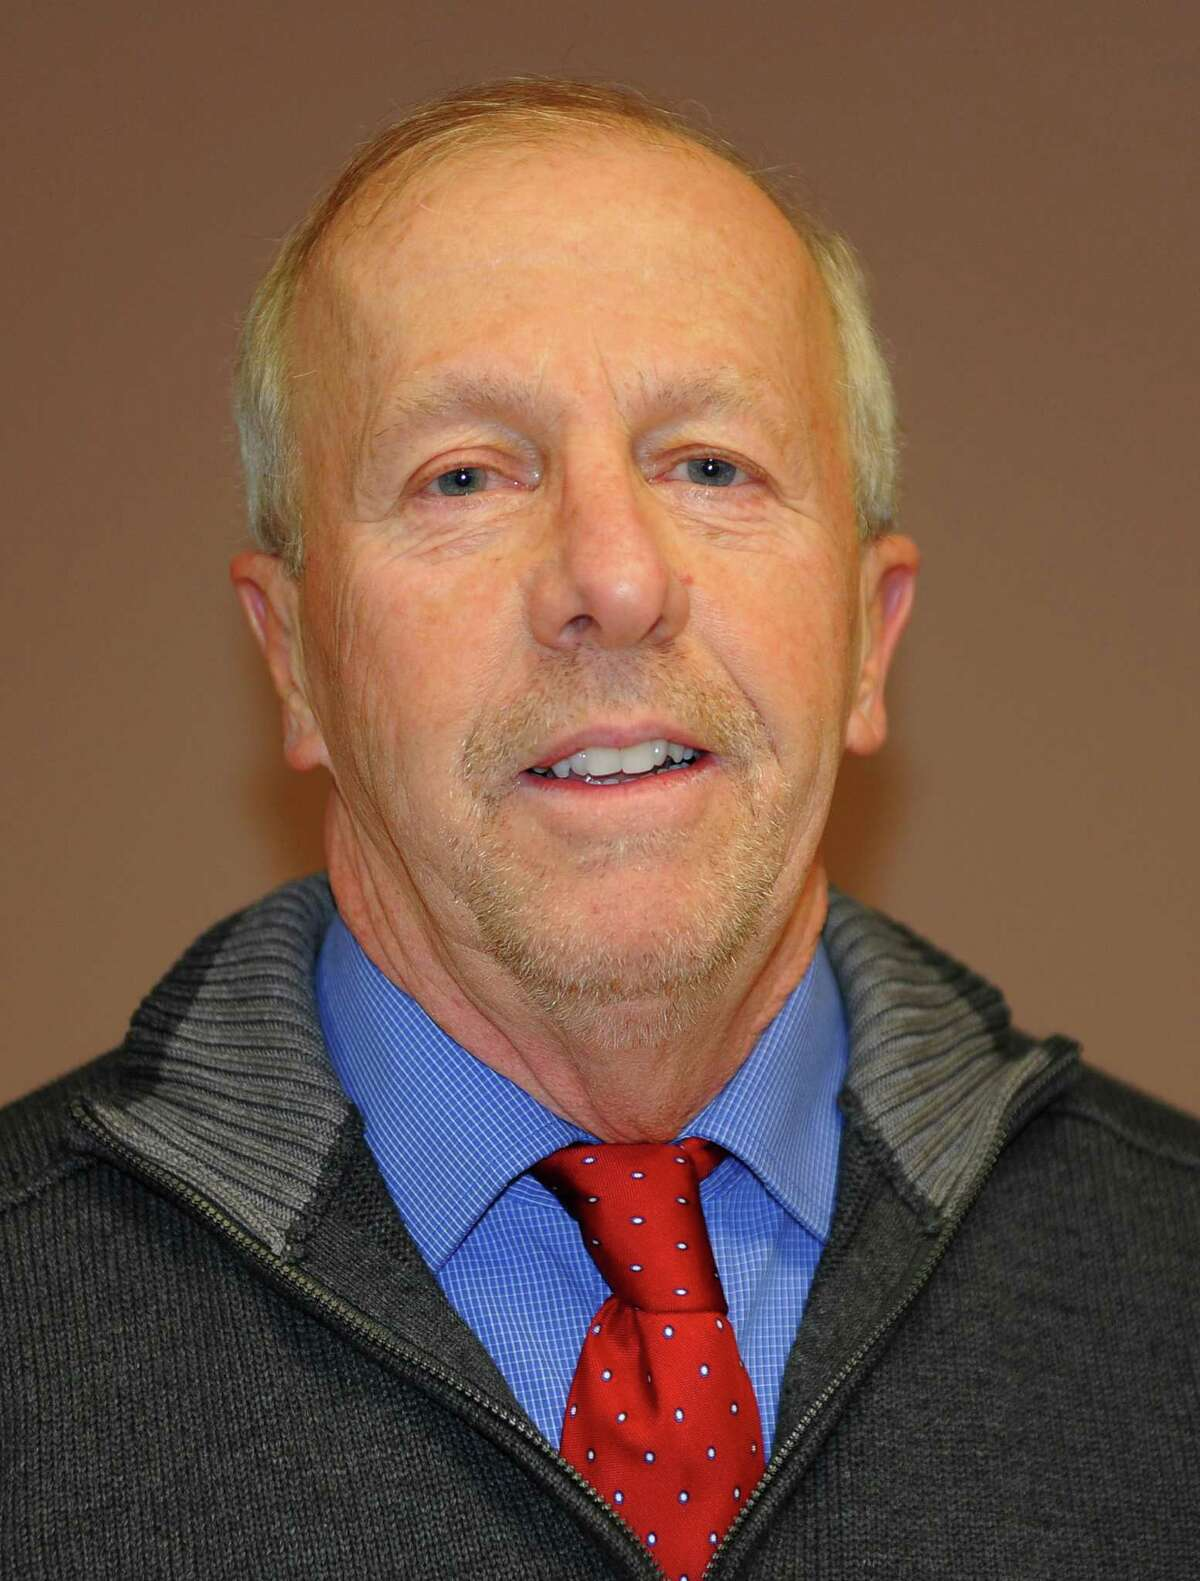 Derby Second Ward Alderman Ron Sill told the Board that vandals have caused more than $8,500 in damage to city property recently